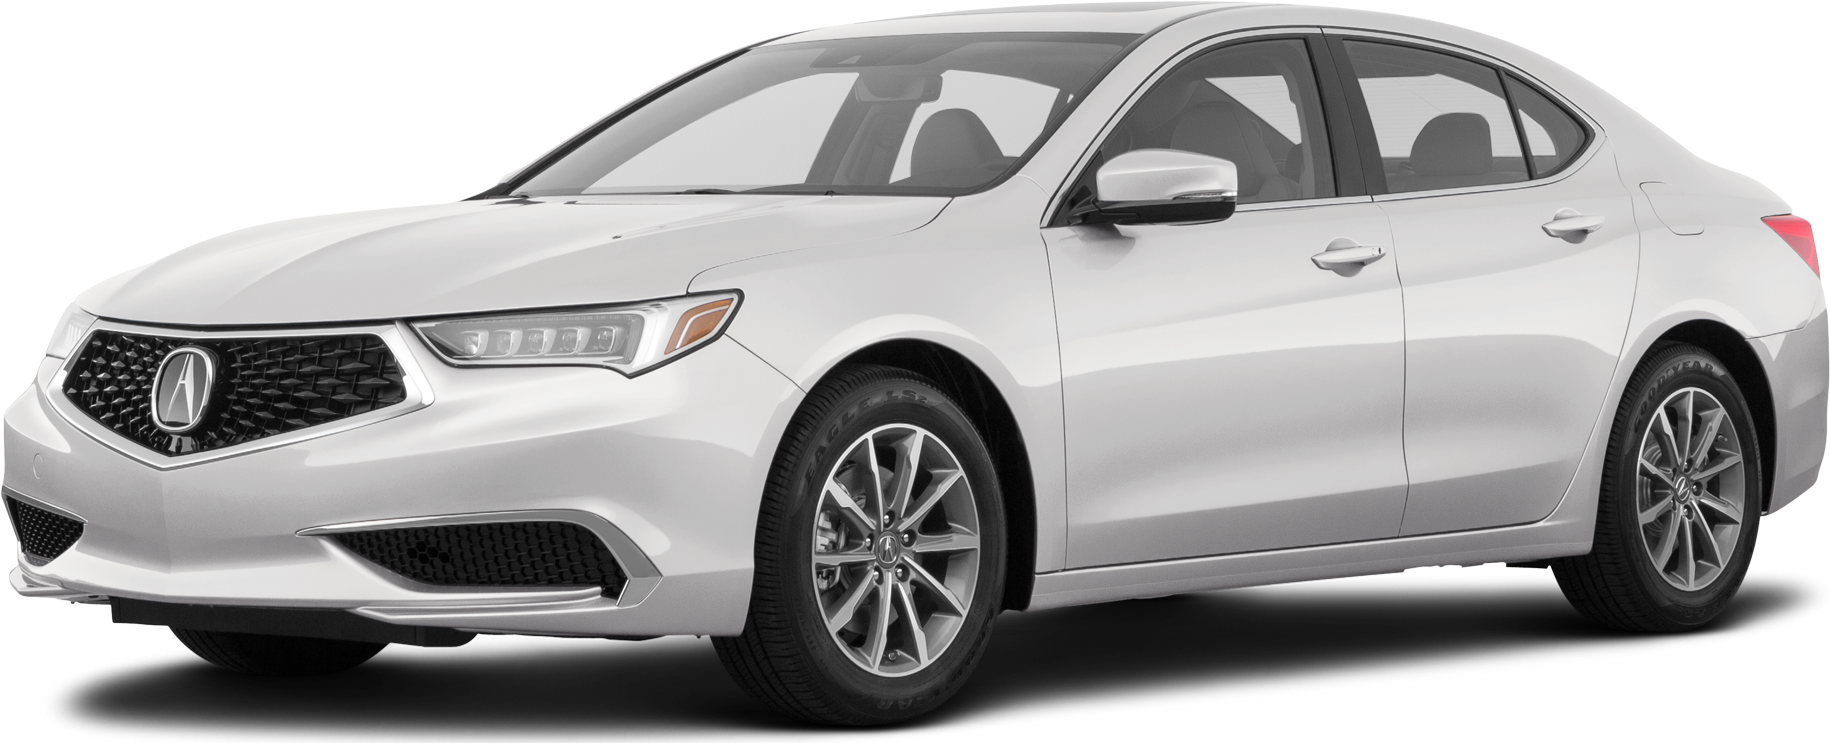 2019 Acura Tlx Values Cars For Sale Kelley Blue Book